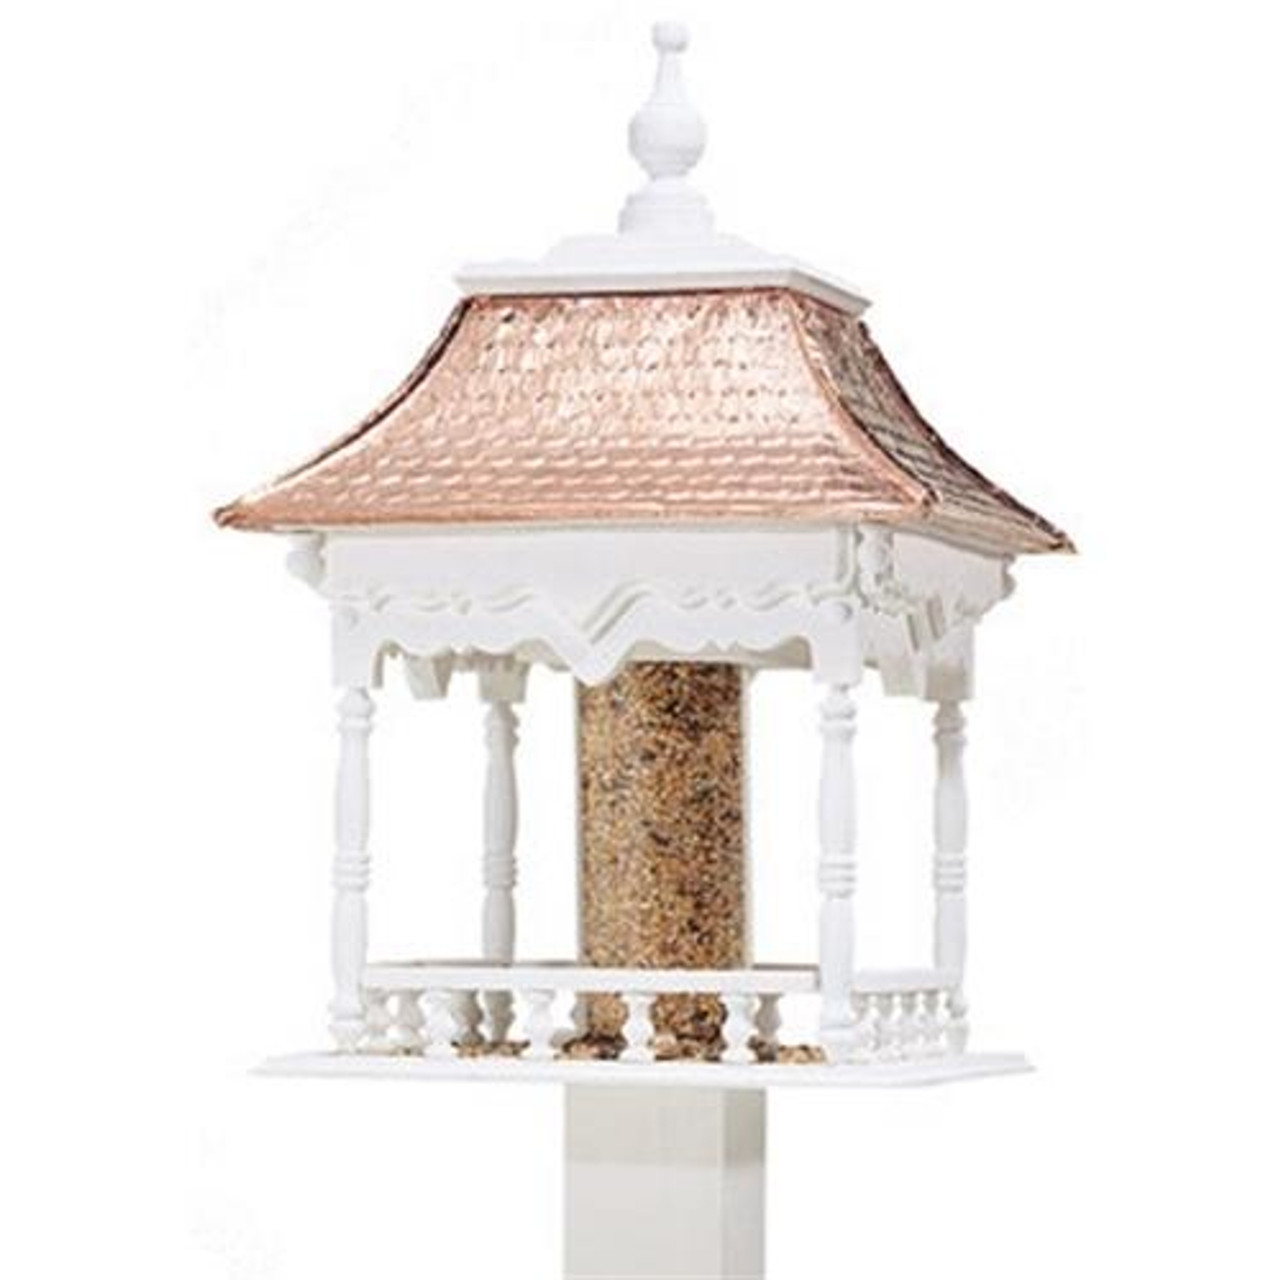 Cherry Tree Toys Curved Copper Roof Feeder Parts Kit